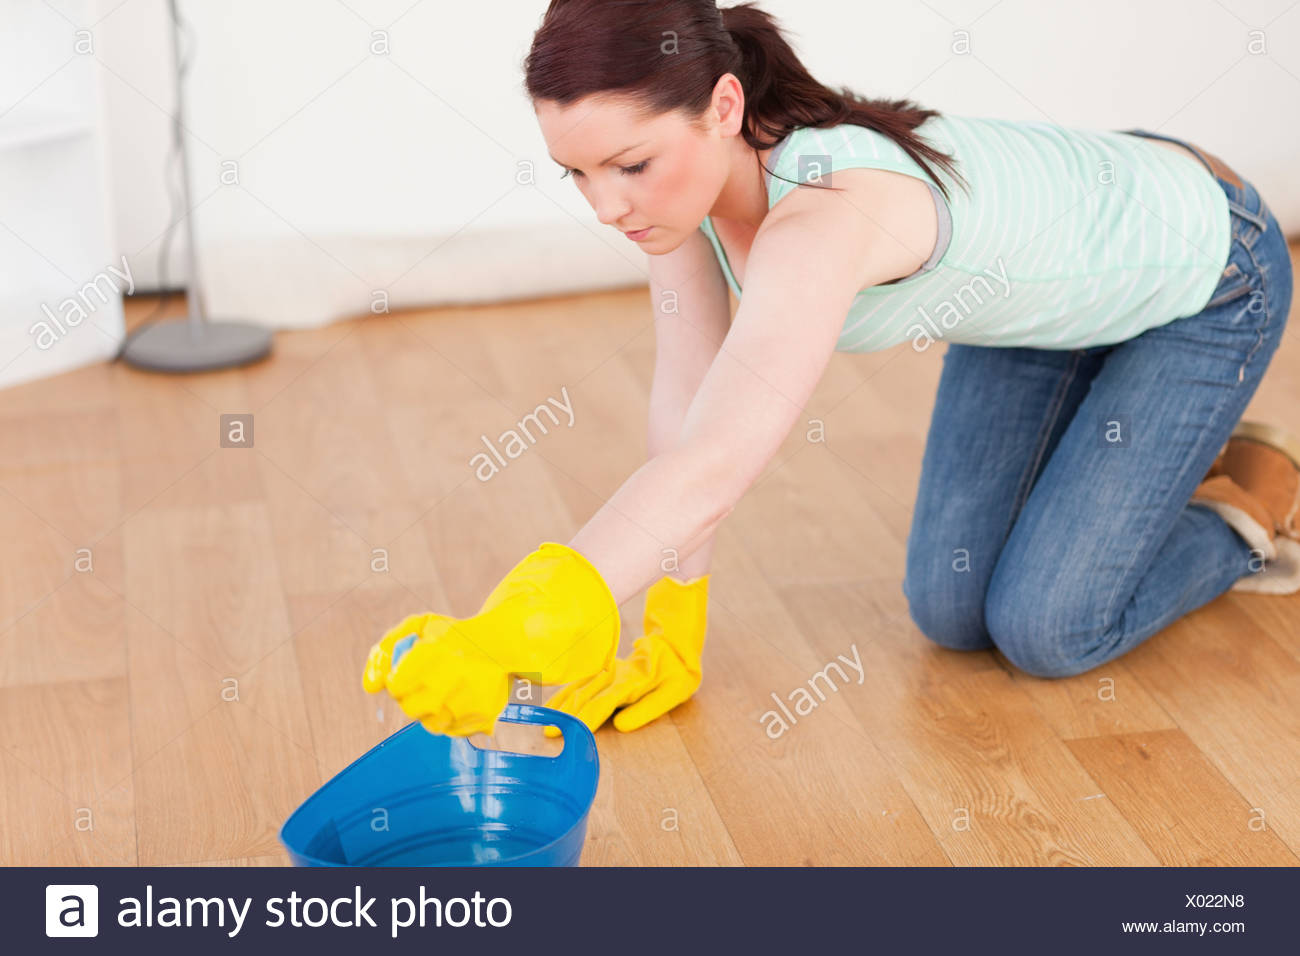 Woman Cleaning Floor Mop Stock Photos Amp Woman Cleaning